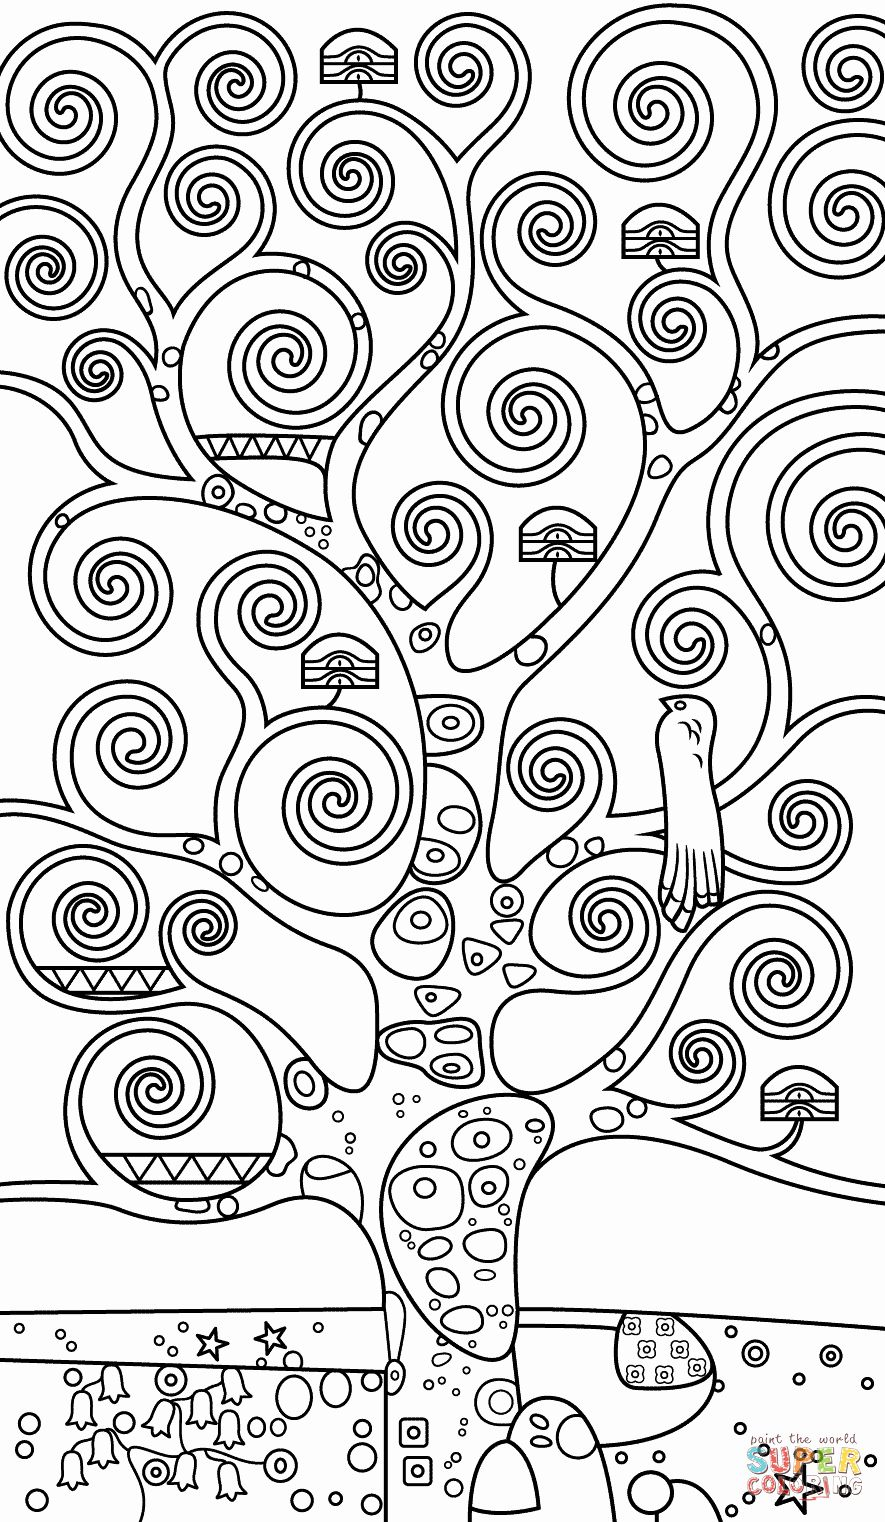 Tree Of Life Coloring Page Best Of Tree Of Life By Gustav Klimt In 2020 Klimt Klimt Art Gustav Klimt